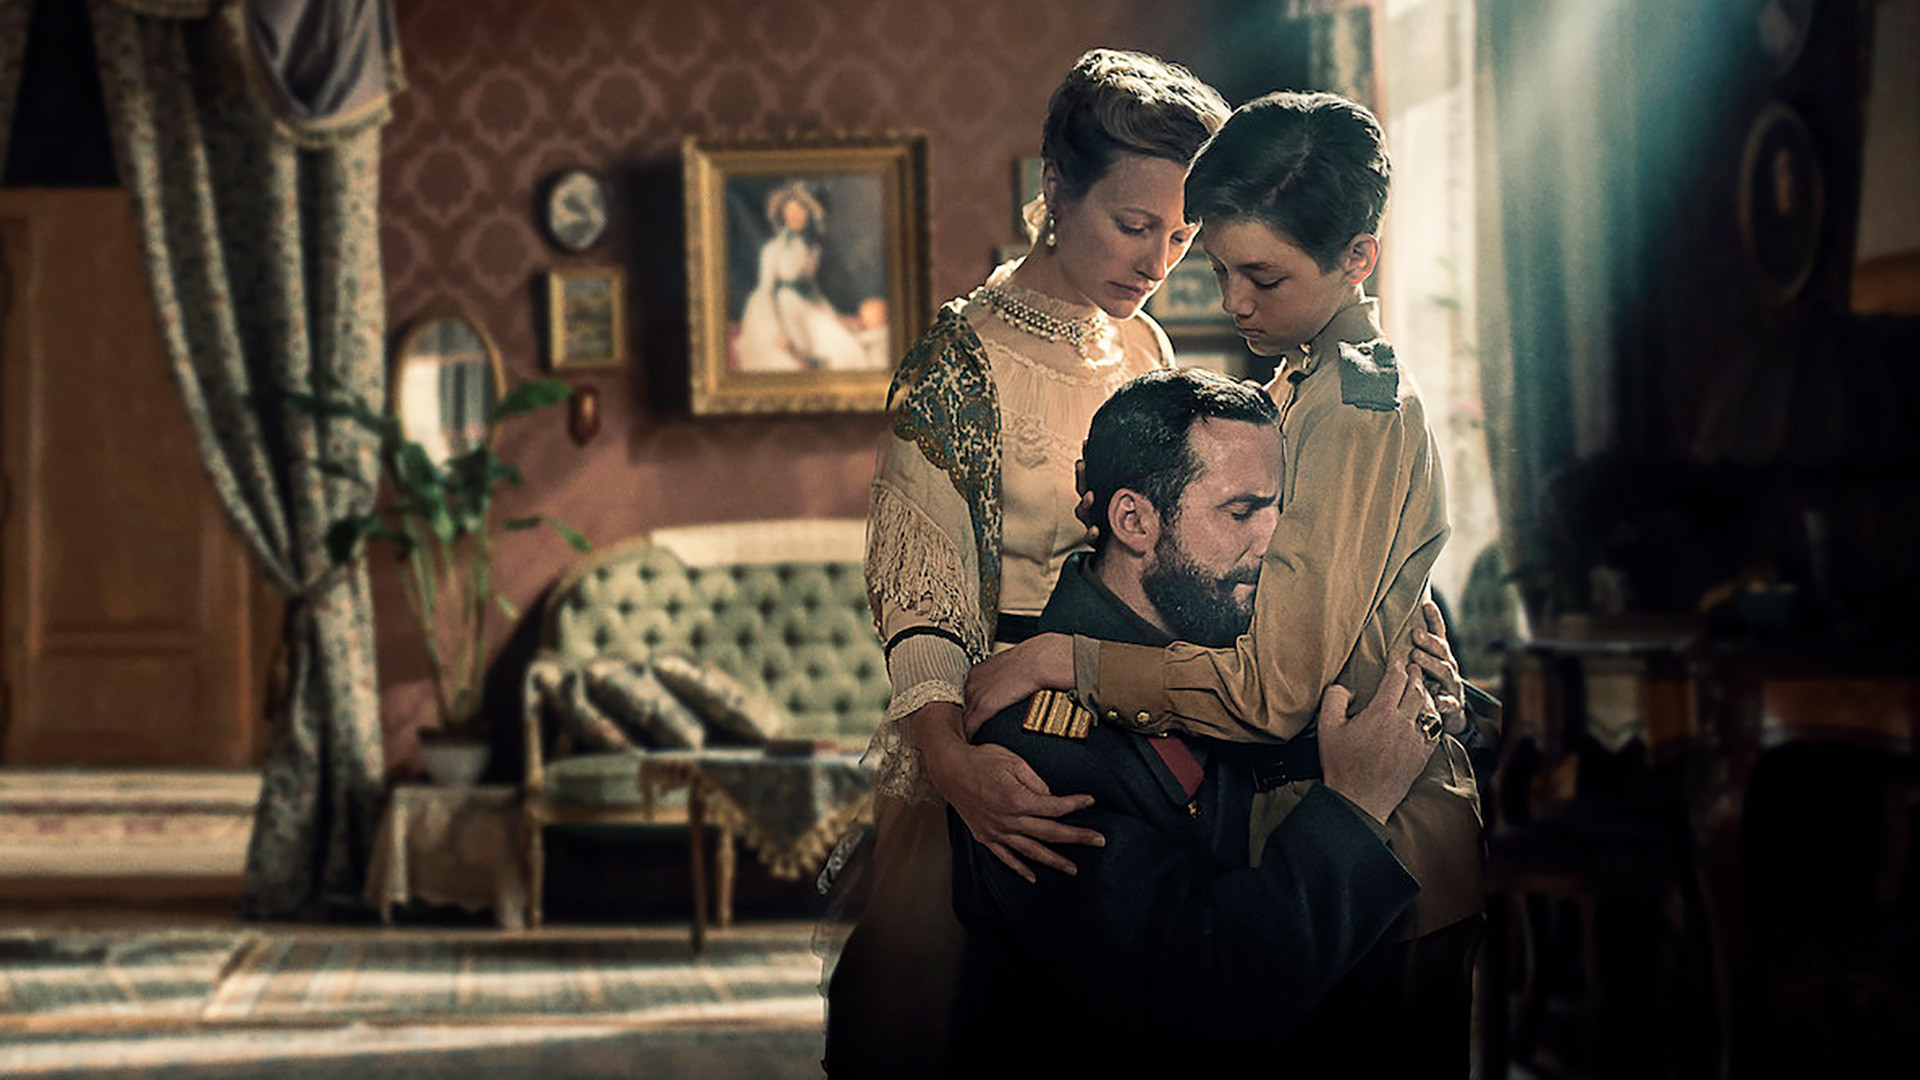 OPINION: Everything wrong with Netflix's 'The Last Czars